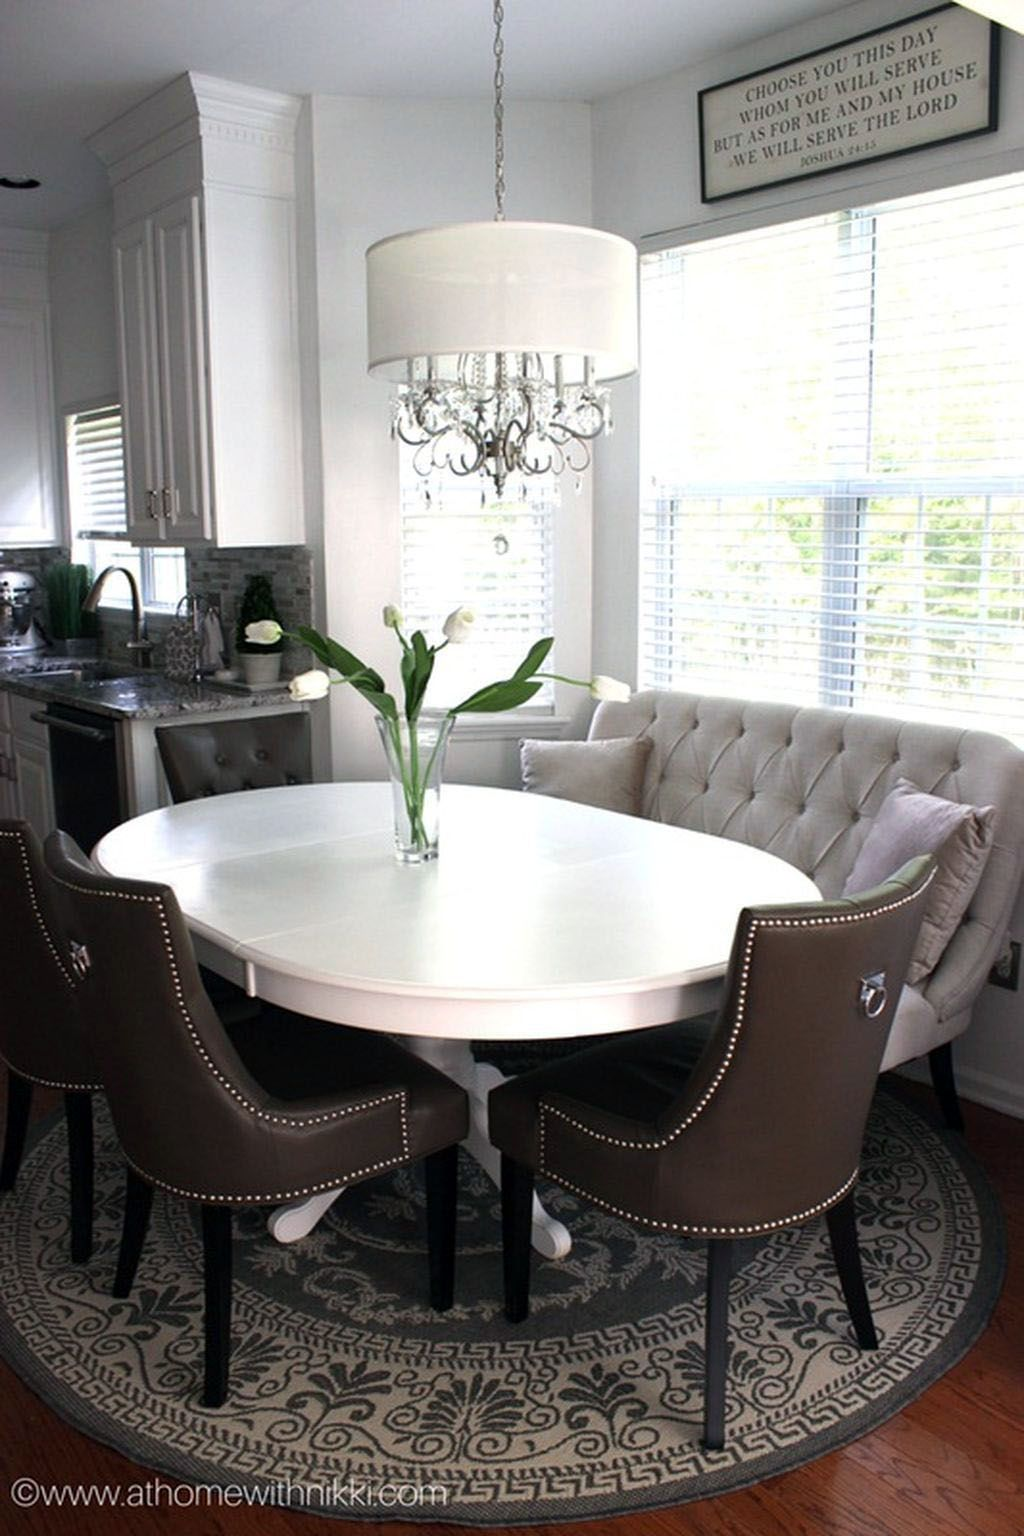 8 Small Kitchen Table Ideas For Your Home Dining Room Layout Room Layout Dining Room Decor